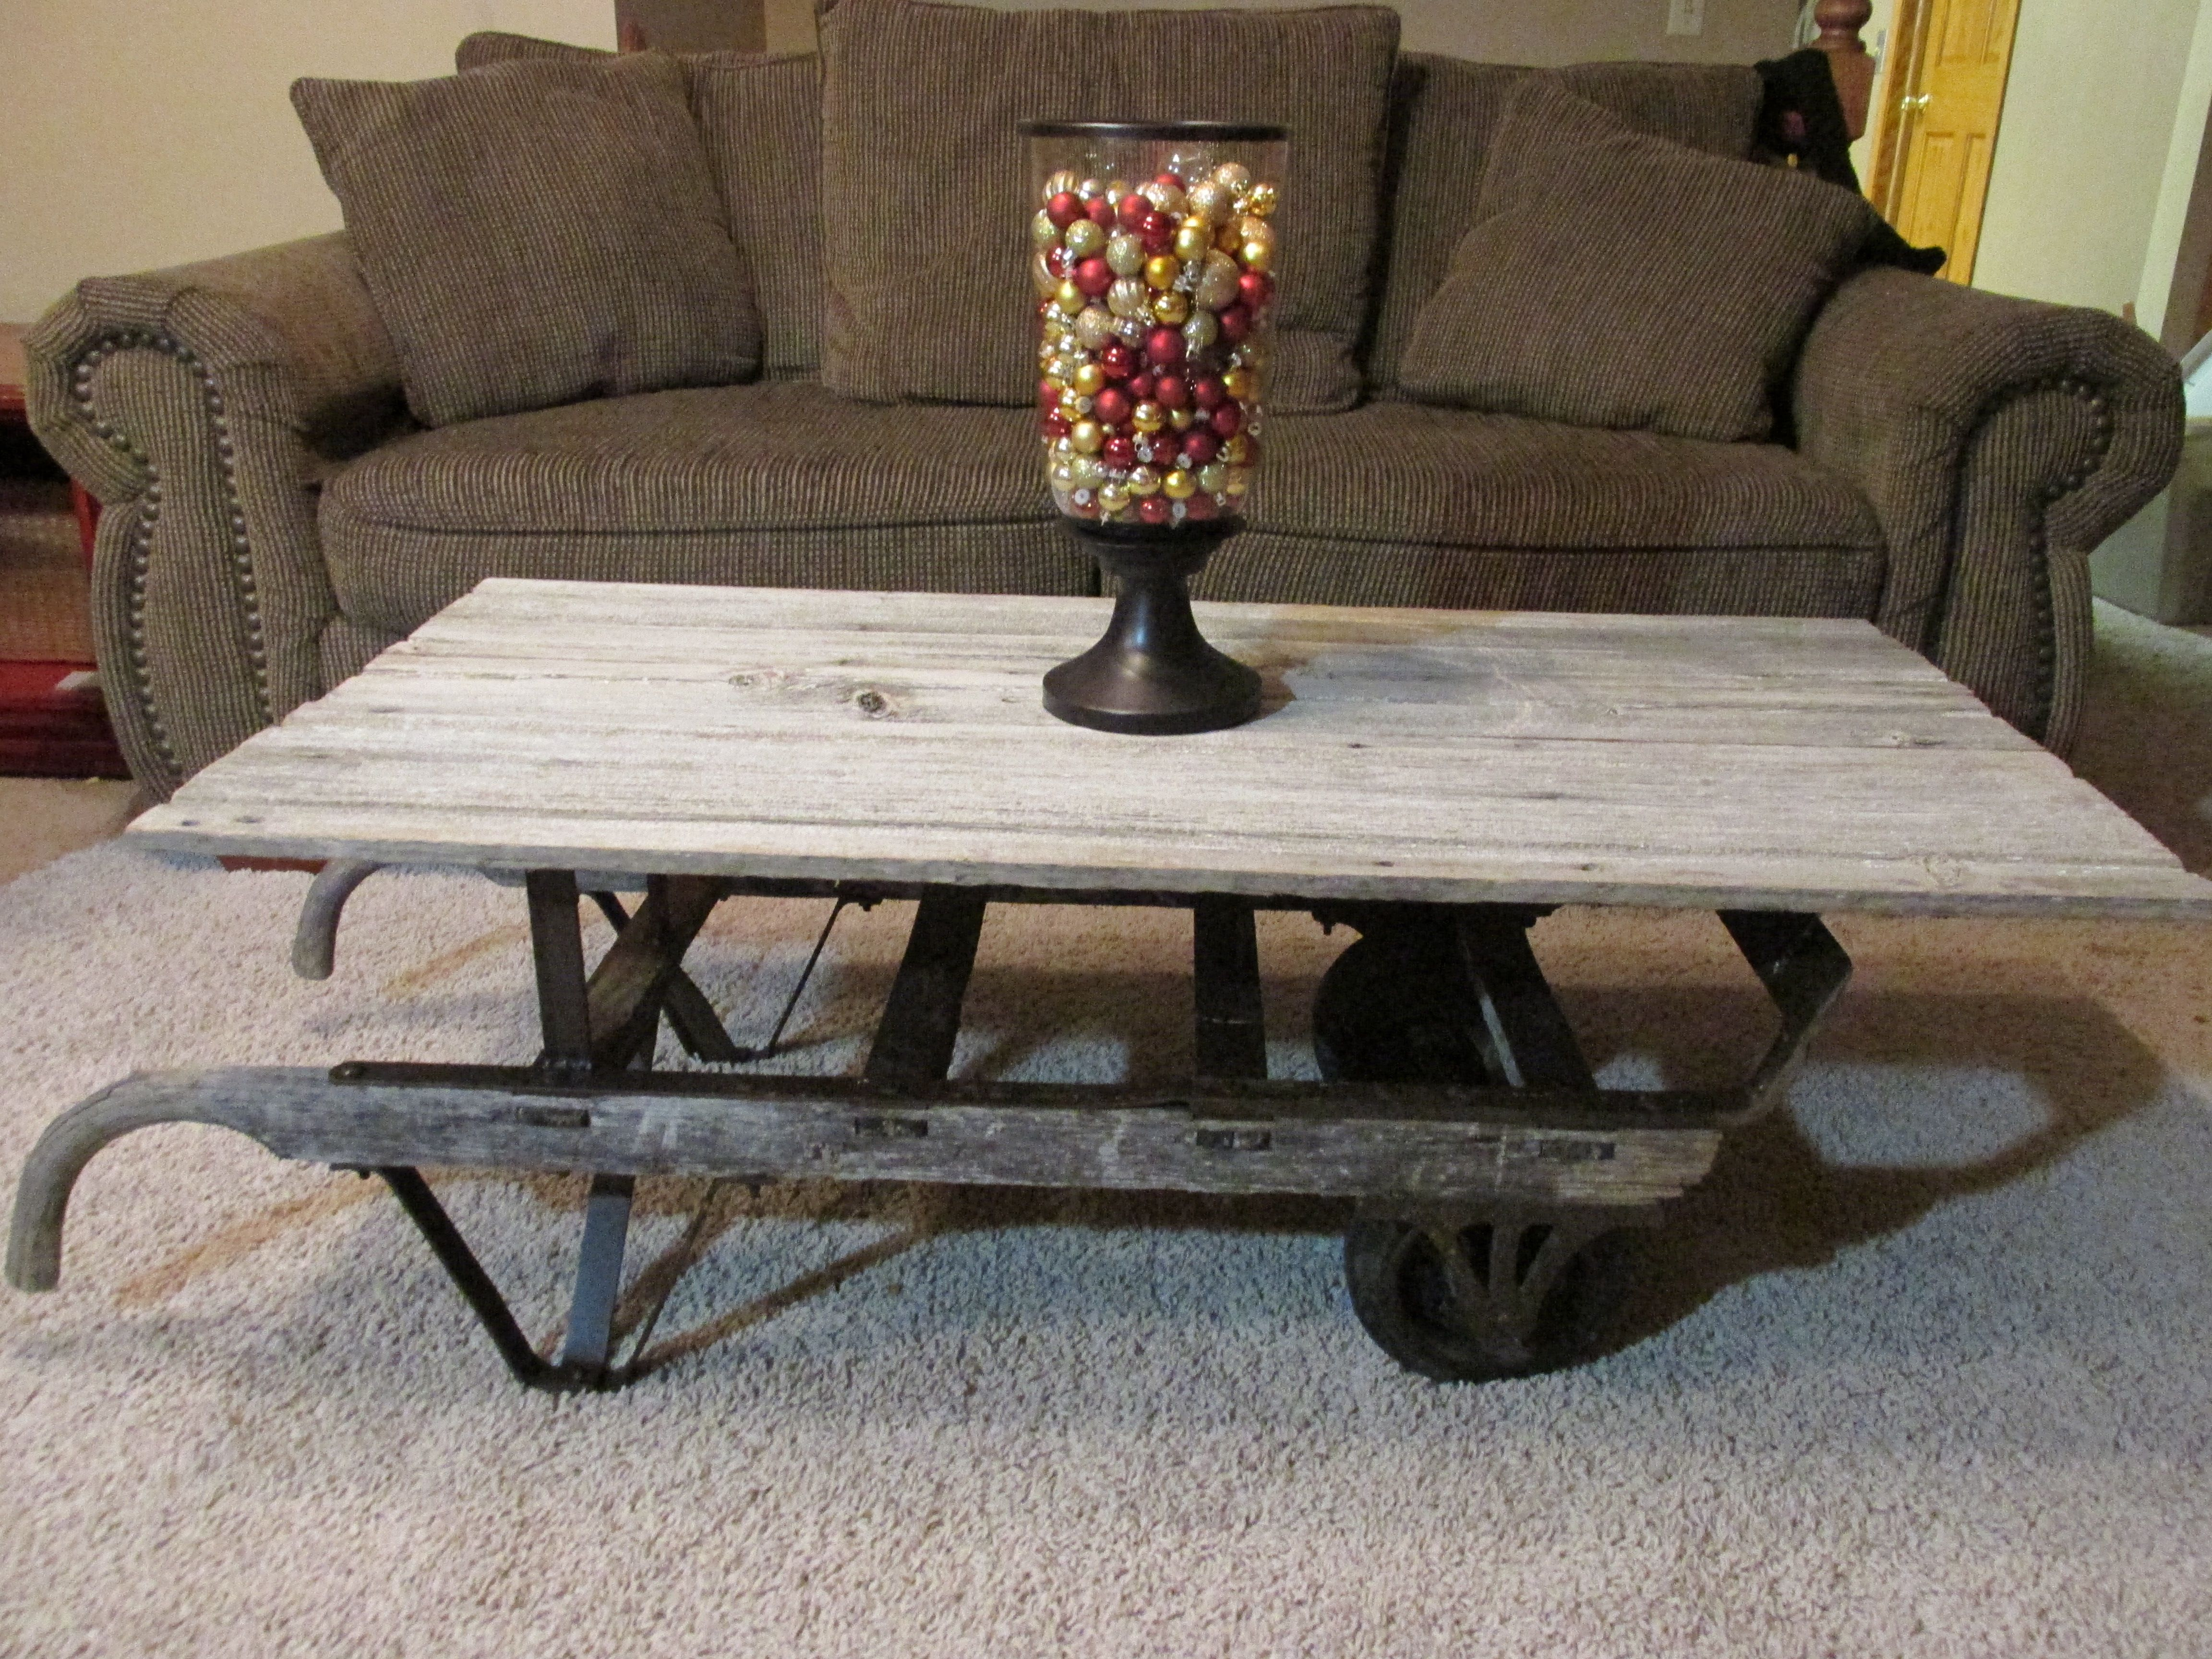 Recycled Coffee Table antique hand truck dolly with a